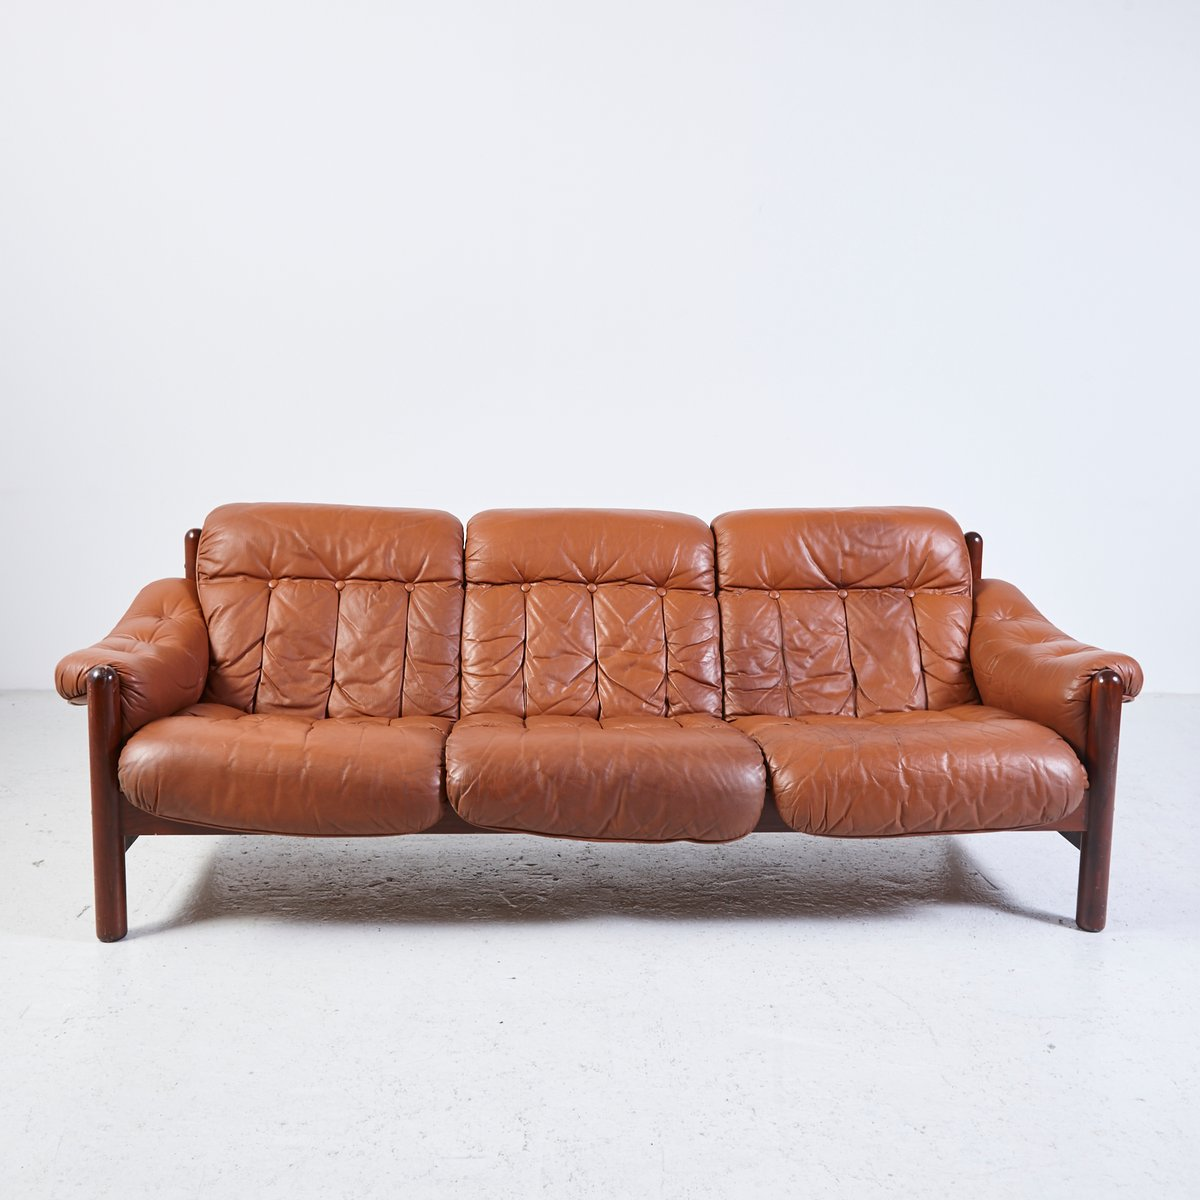 Vintage 3 Seater Leather Sofa With Teak Frame